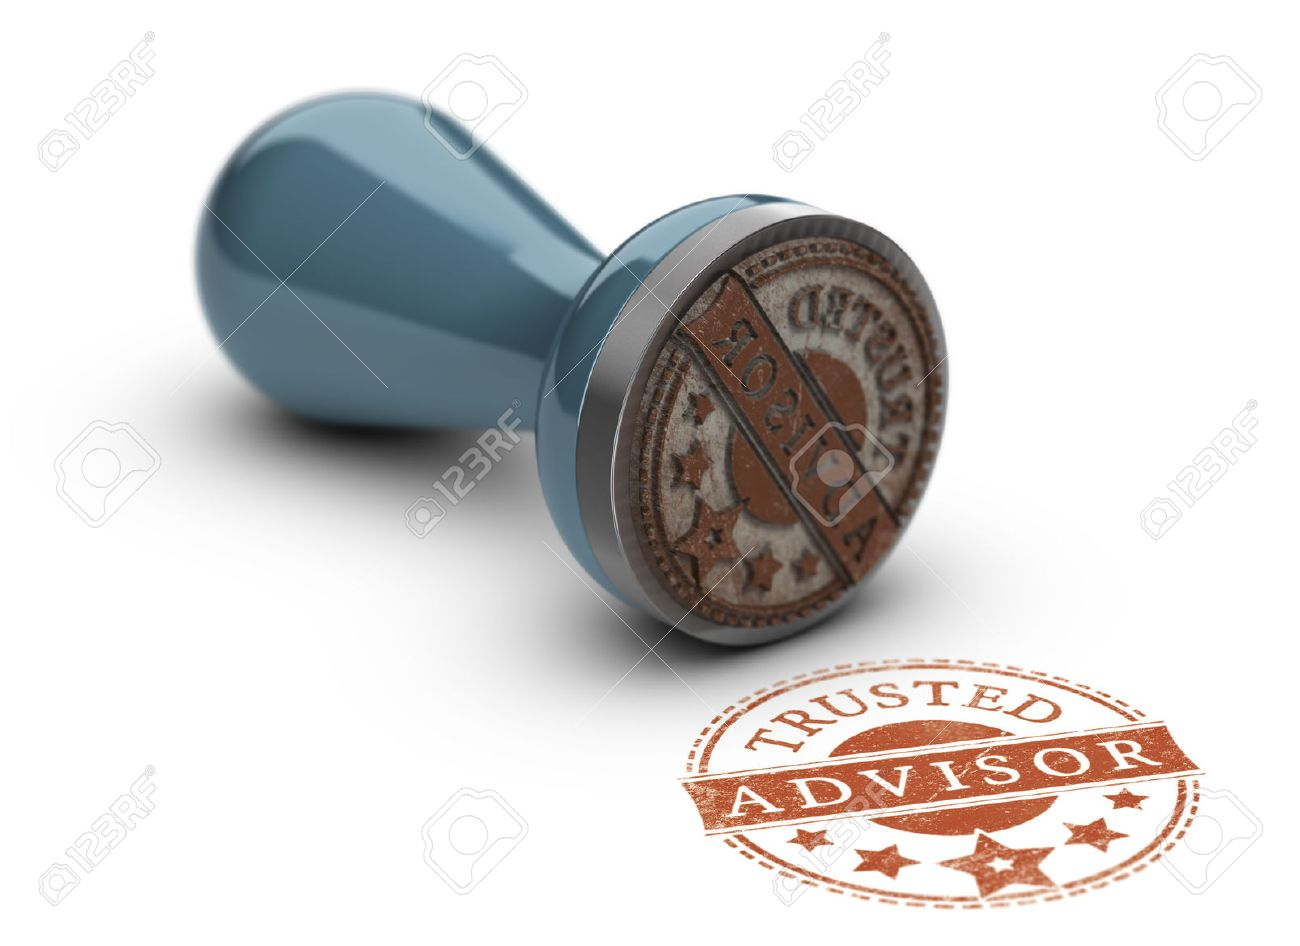 Trusted avisor rubber stamp over white background. Concept of trust in business. Stock Photo - 52381227